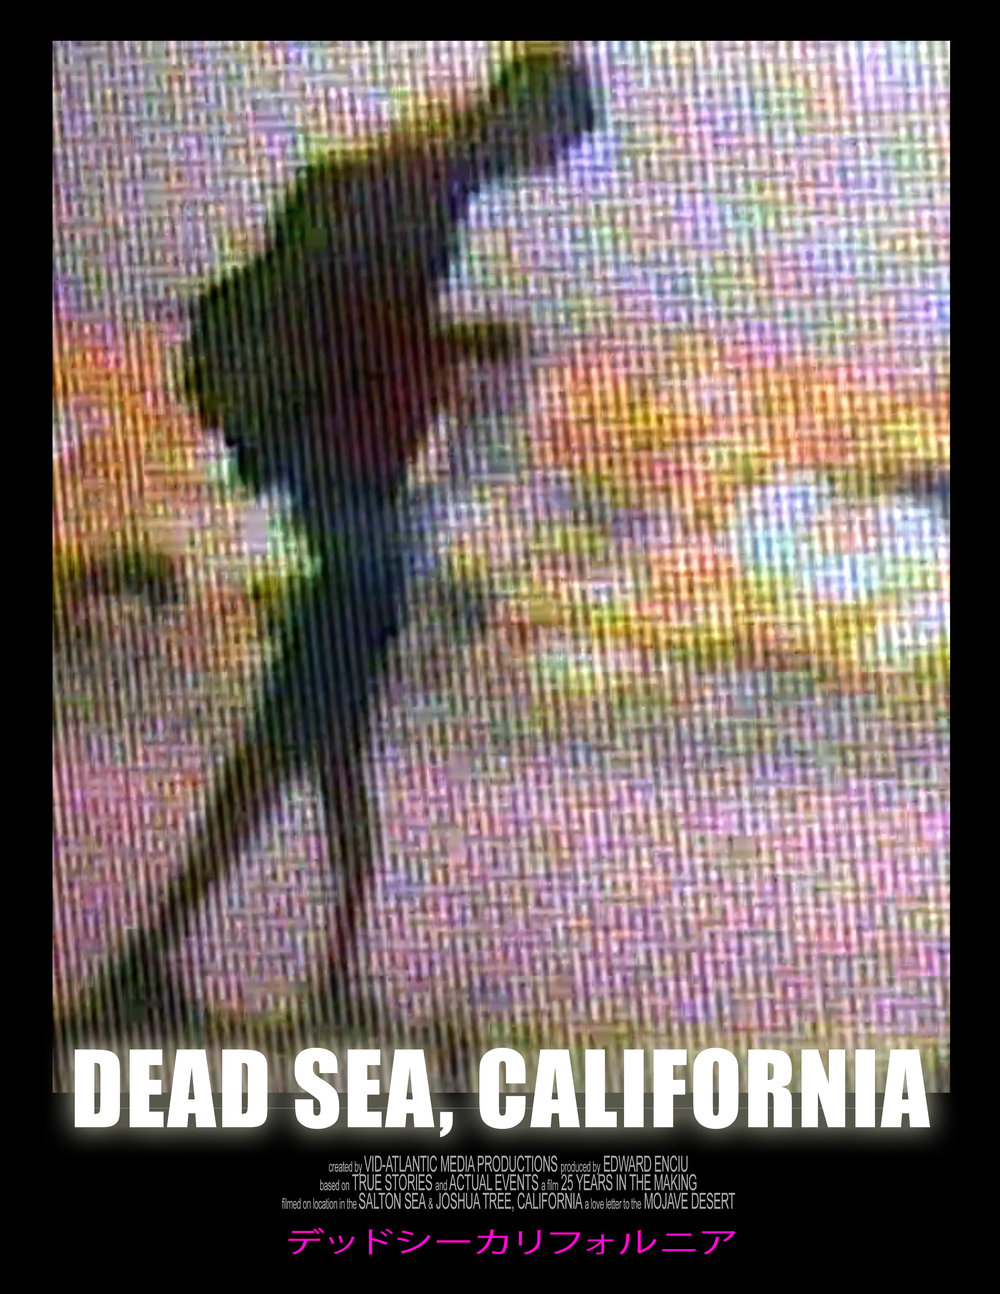 Dead Sea Calif poster BEACH WALKER 092017.jpg